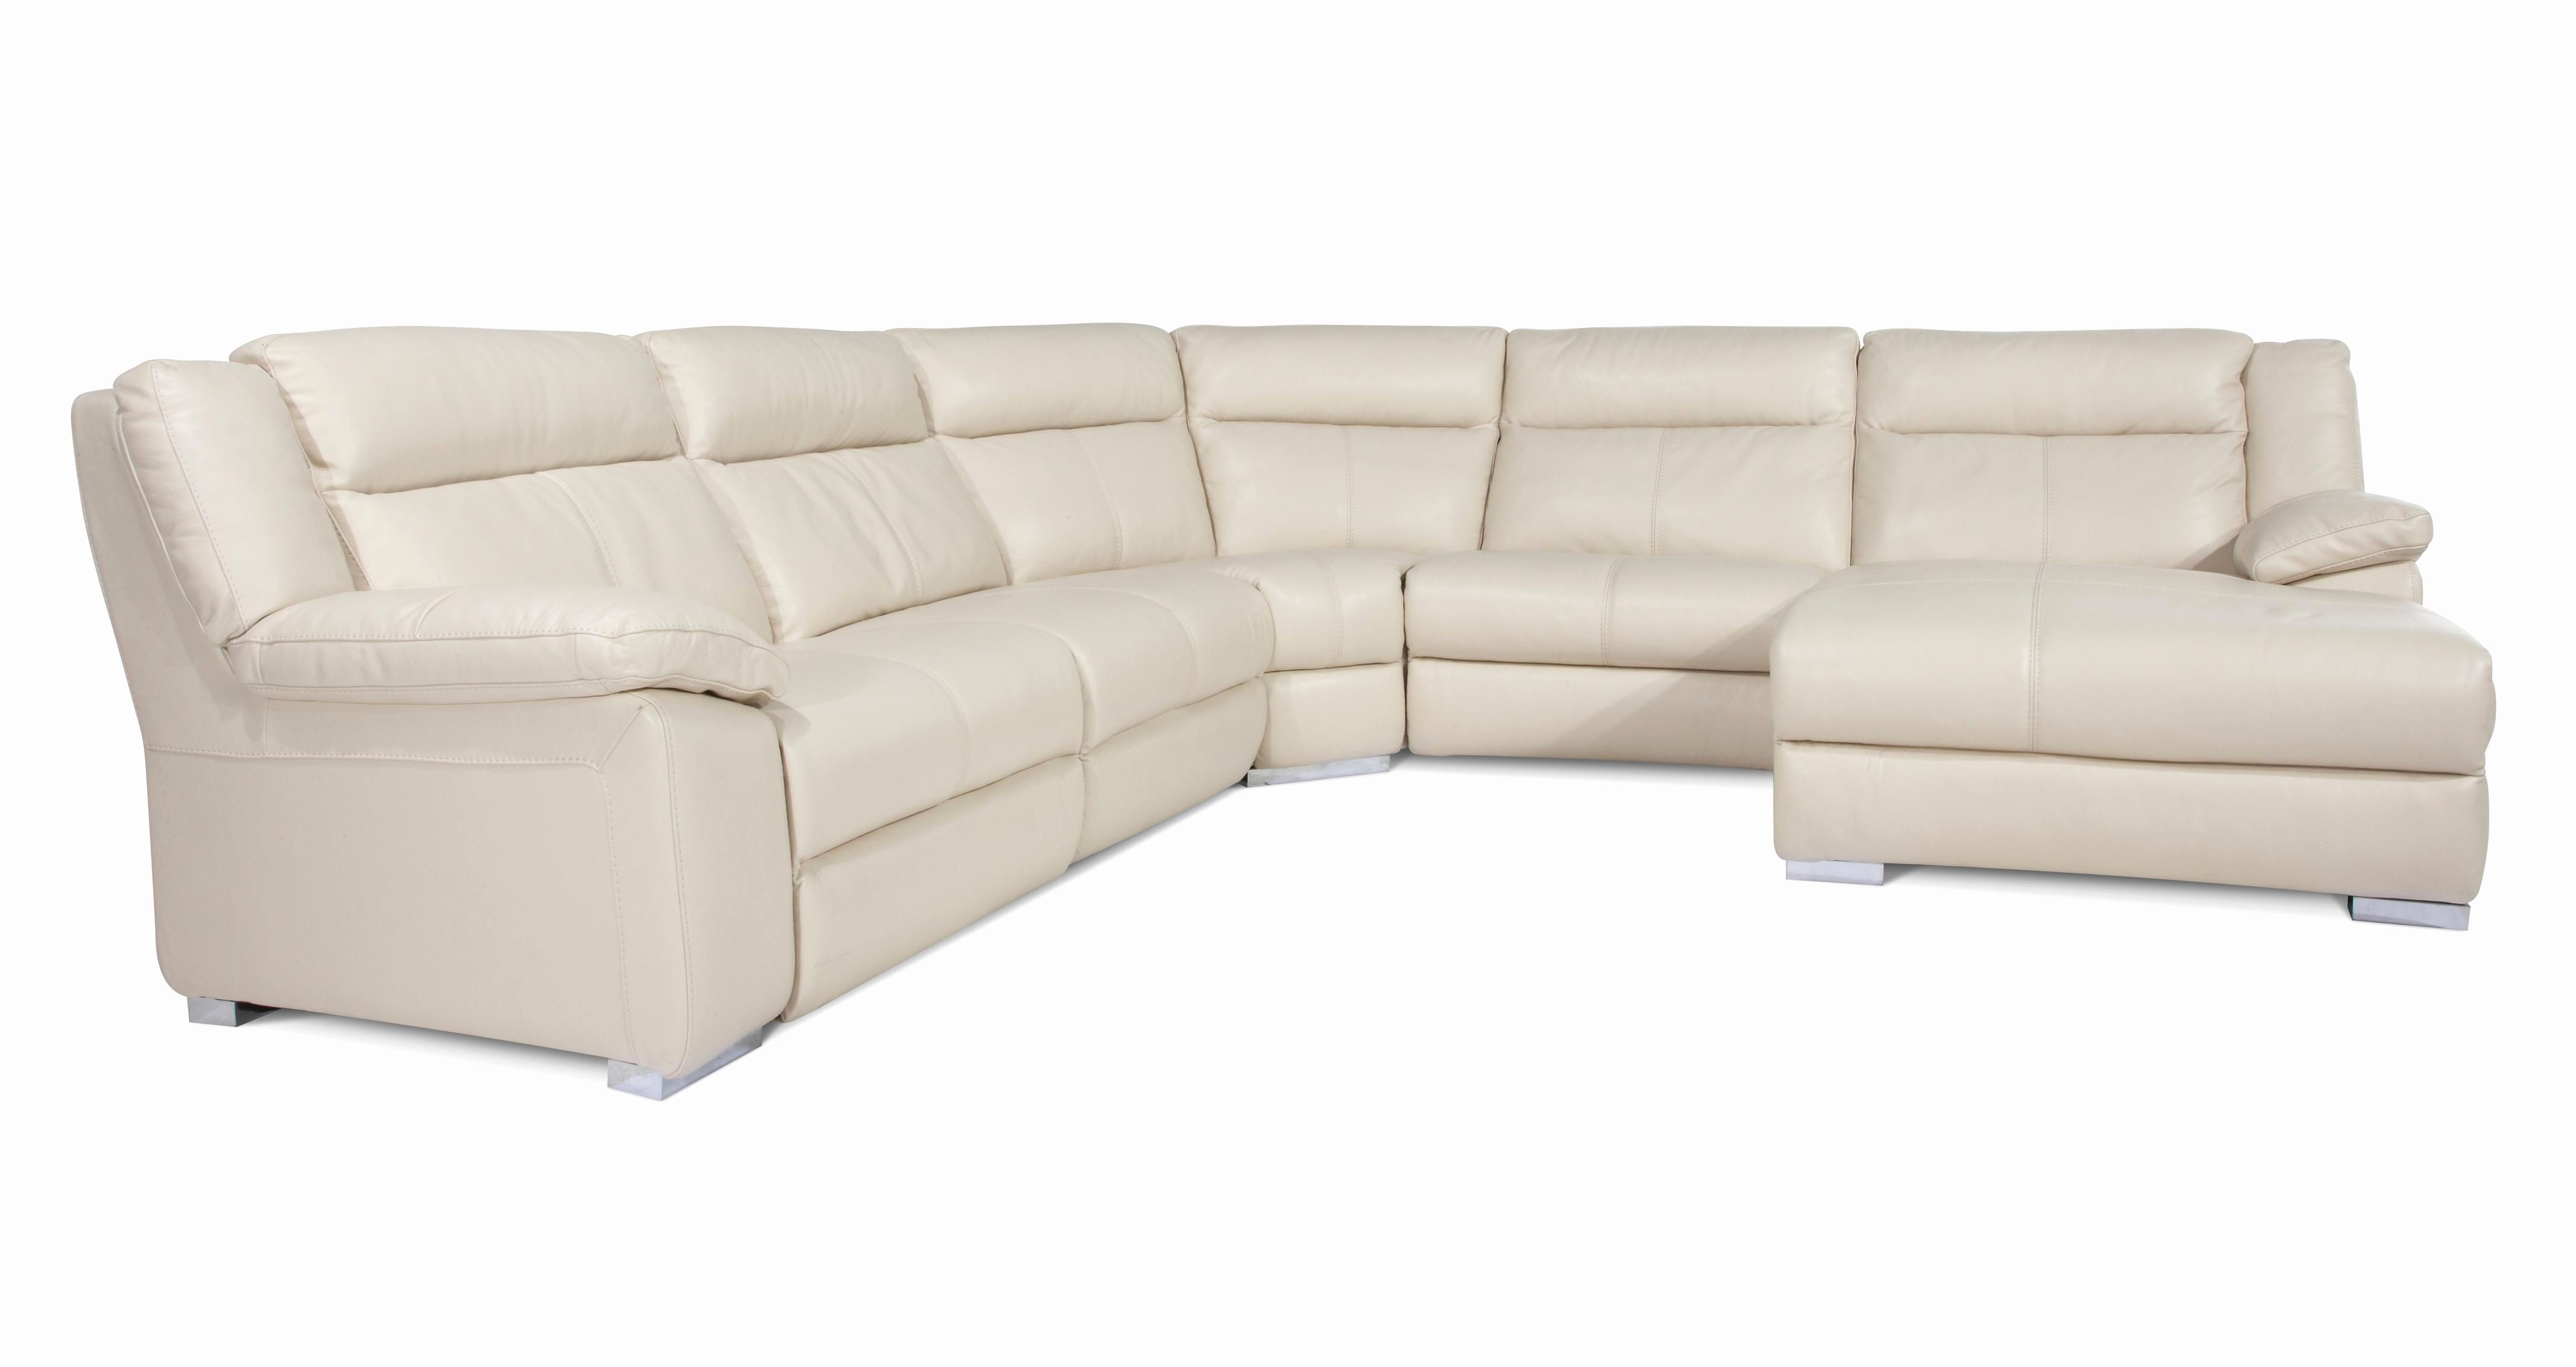 Lovely Chaise Corner Sofa Shot Swift Right Hand Facing Chaise Electric Corner Sofa New Club Dfs Chaise Corner Sofa Corner Sofa